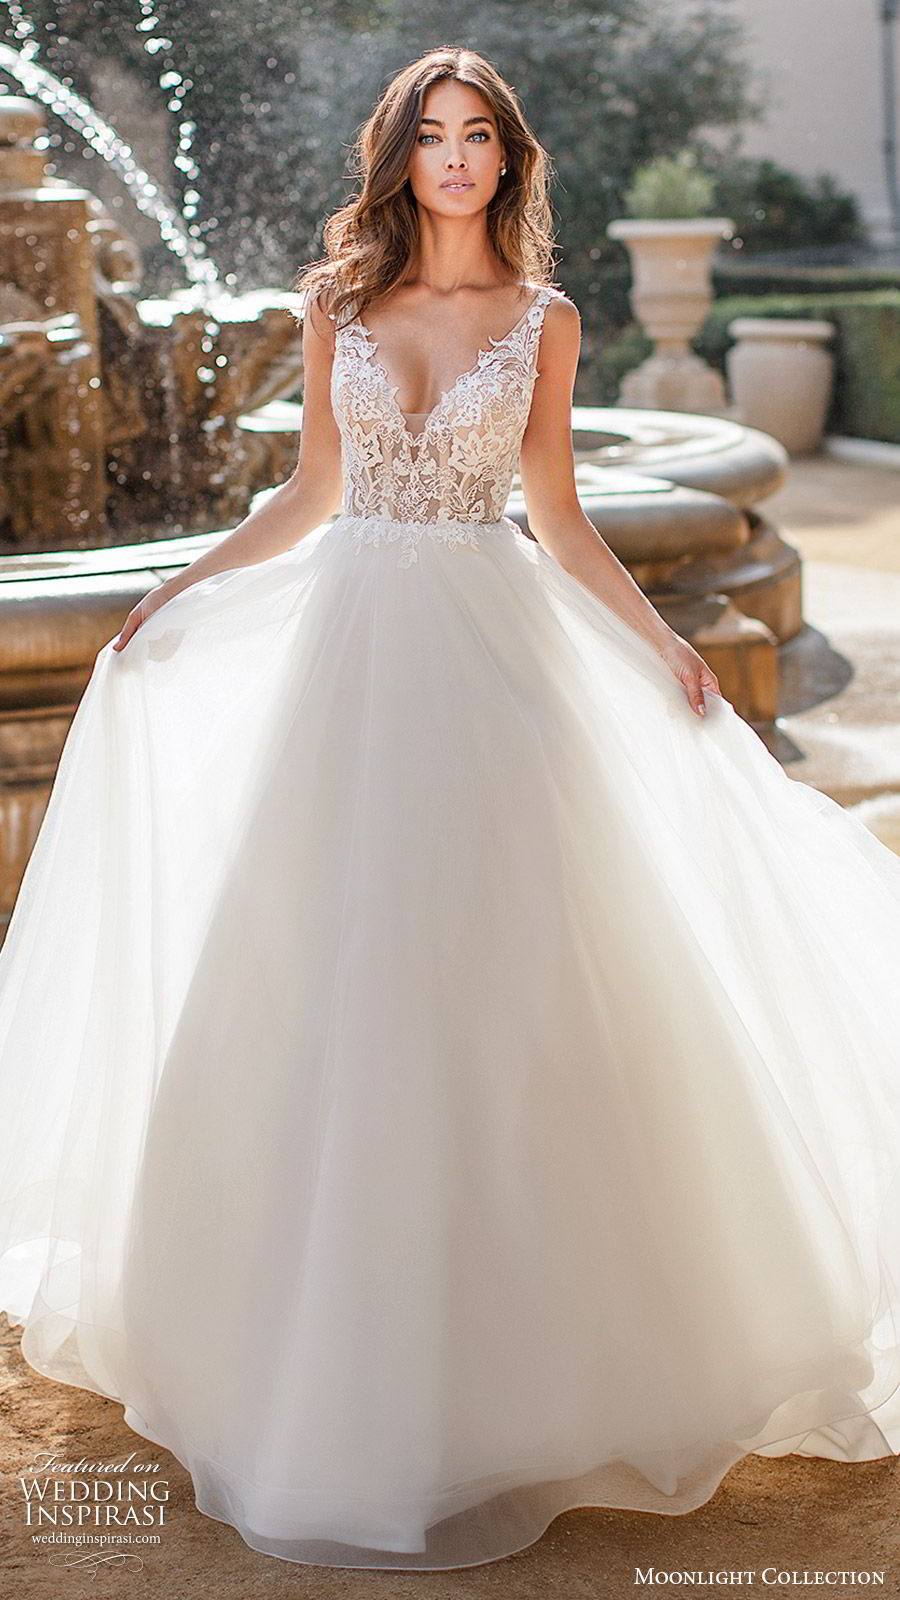 moonlight collection fall 2019 bridal sleeveless illusion straps v neckline embellished lace bodice a line ball gown wedding dress (3) elegant romantic chapel train mv